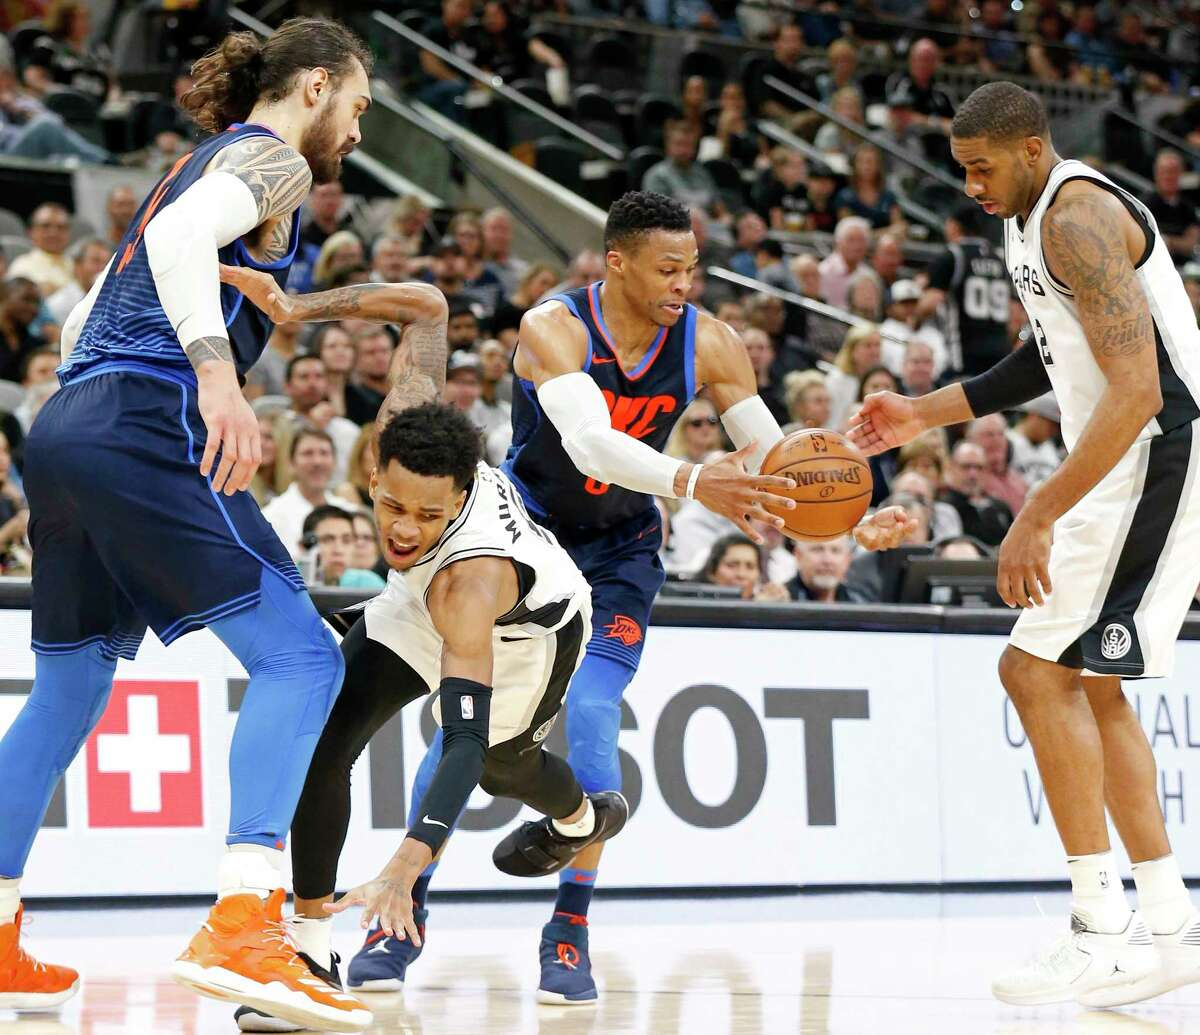 Oklahoma City Thunder's Steven Adams (from left), San Antonio Spurs' Dejounte Murray, Oklahoma City Thunder's Russell Westbrook and San Antonio Spurs' LaMarcus Aldridge chase after a loose ball during first half action Thursday March 29, 2018 at the AT&T Center.